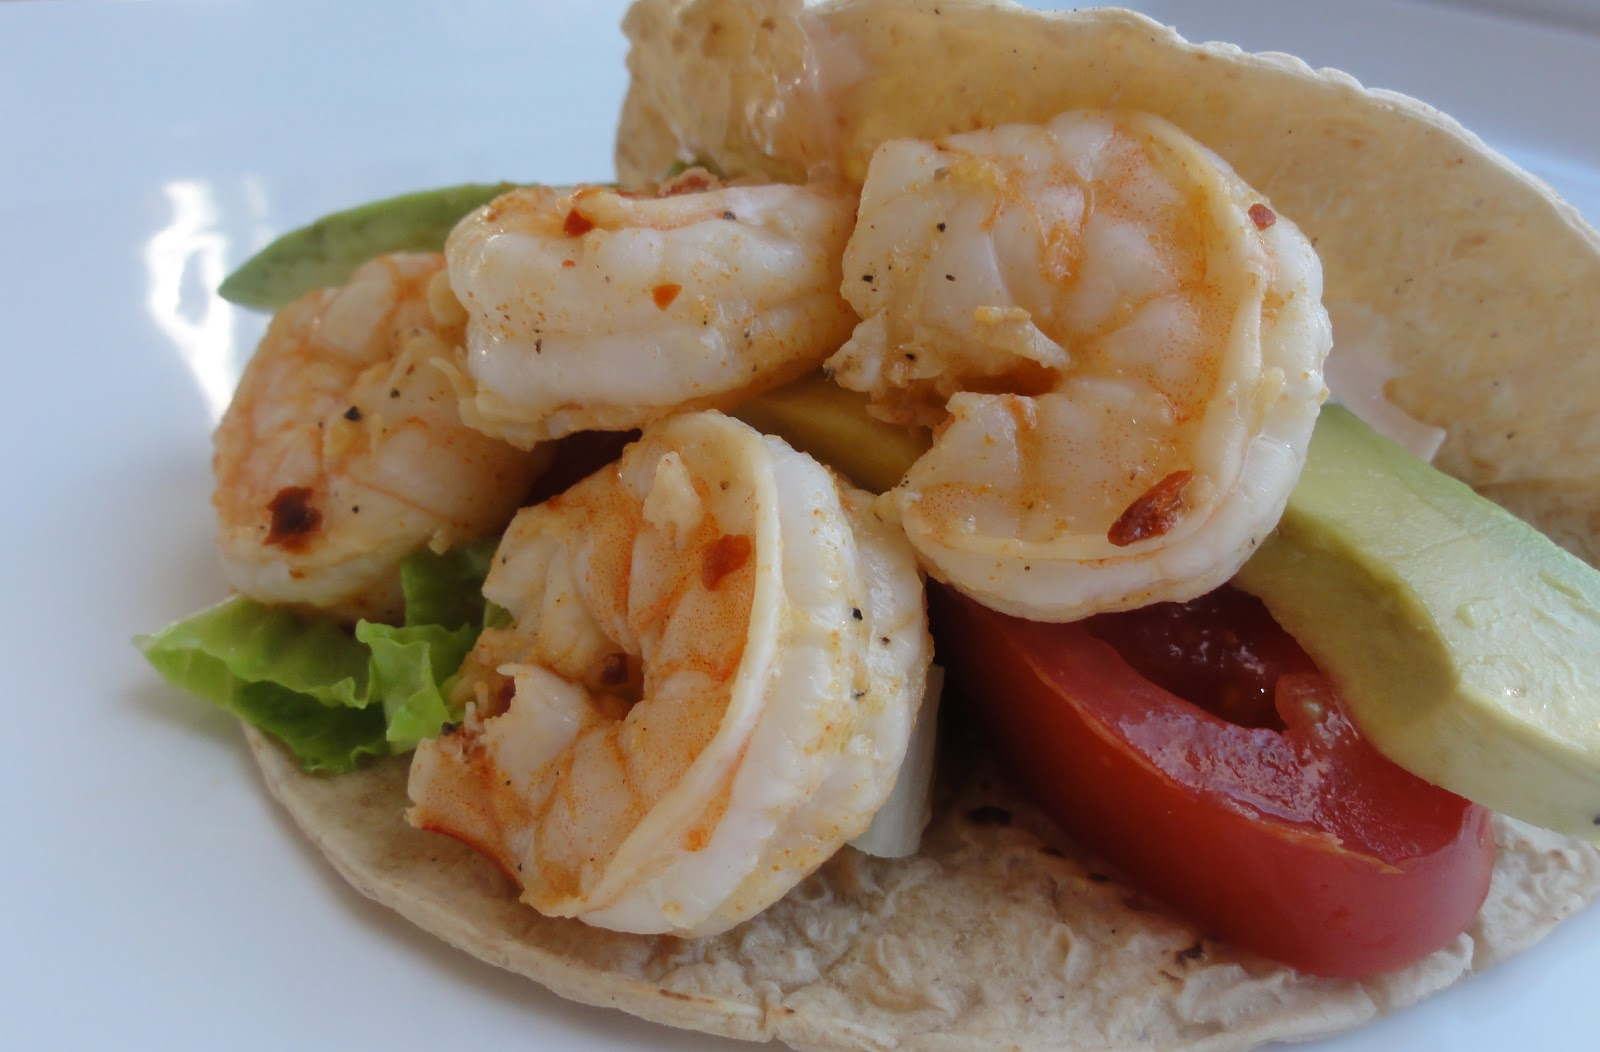 ... . Perfect! I have an easy and delicious shrimptaco recipe to share